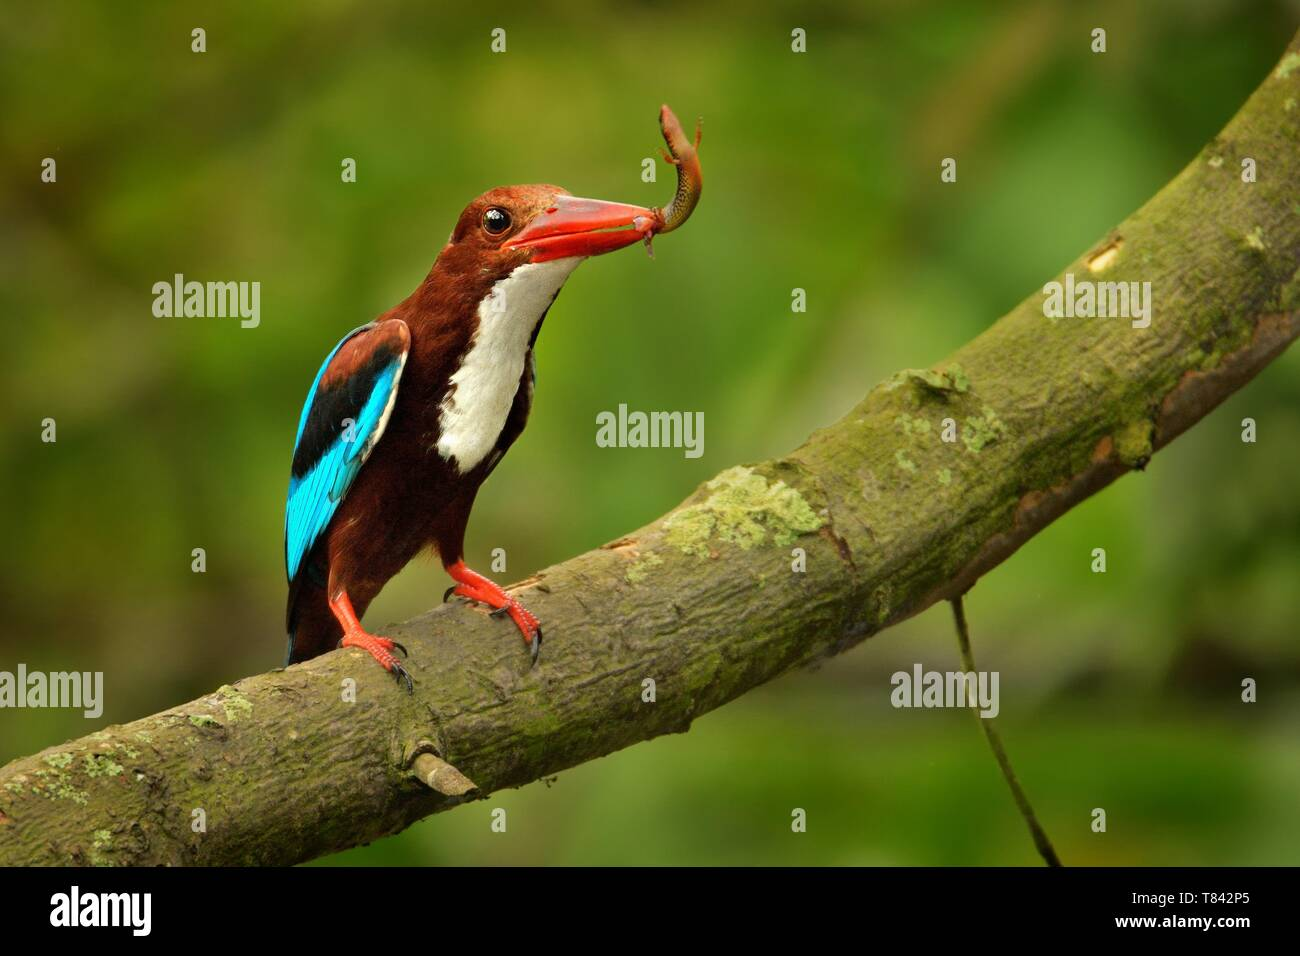 White-throated Kingfisher (Halcyon smyrnensis) on the branch, also known as the white-breasted kingfisher,  tree kingfisher, distributed in Asia from  - Stock Image